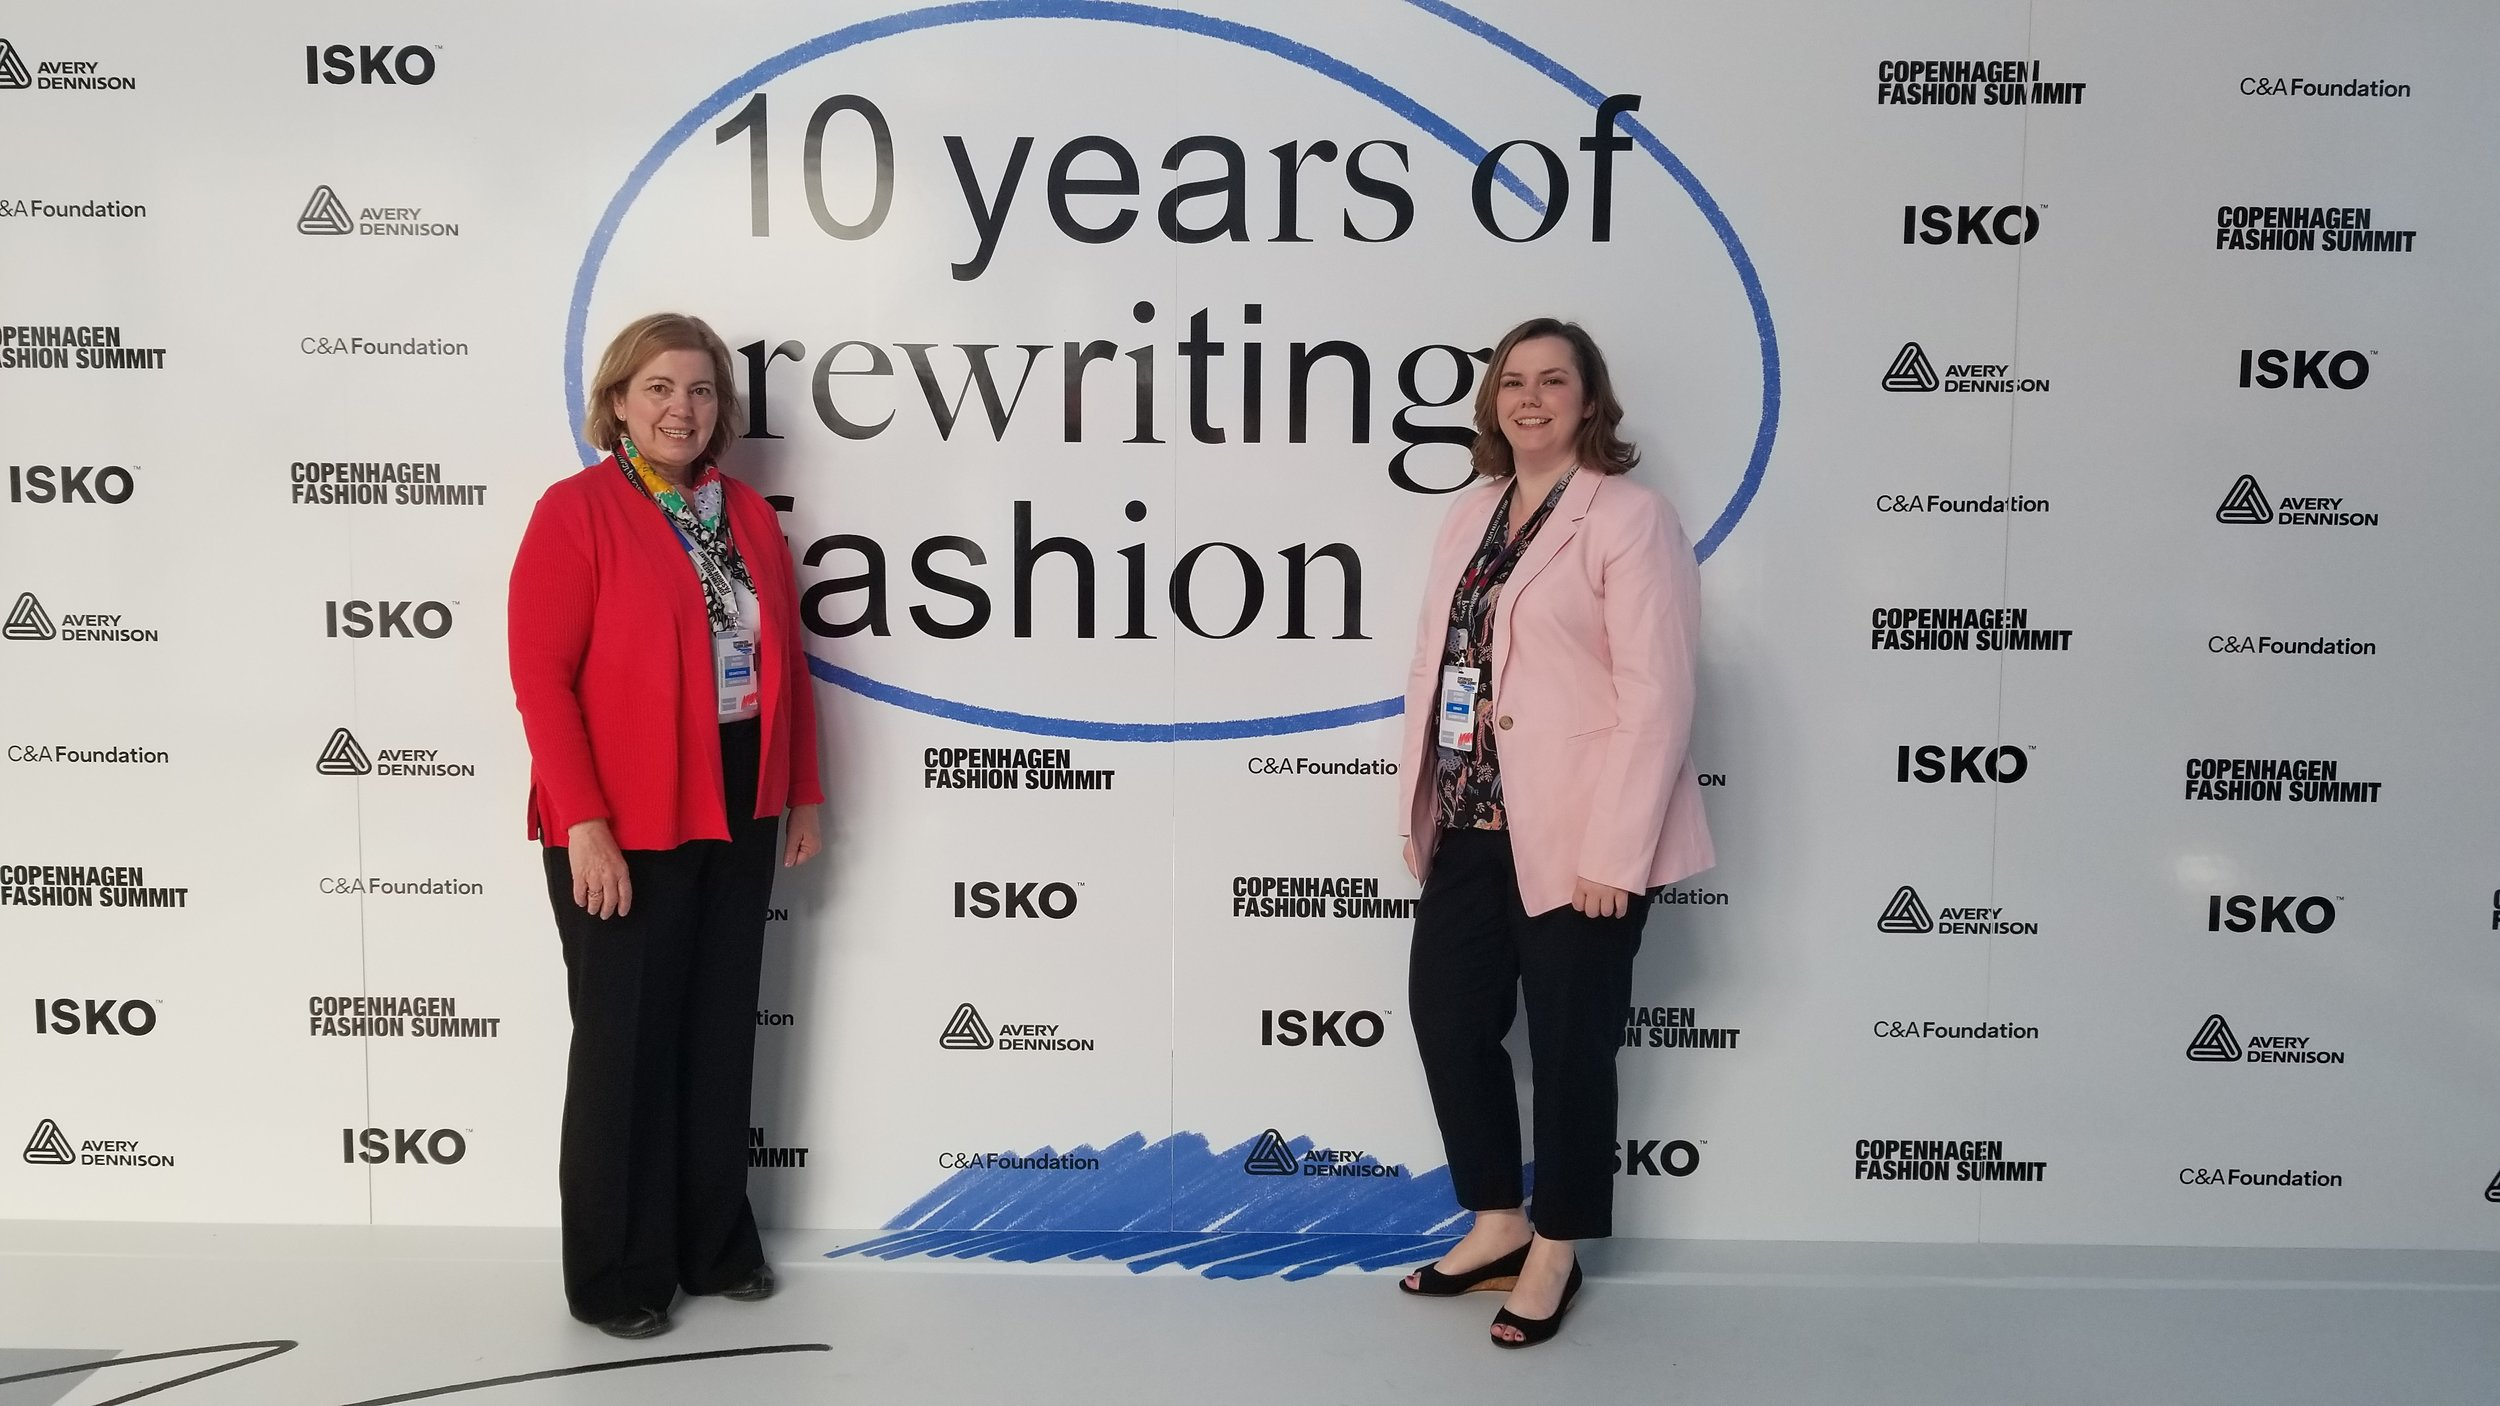 Me and my mom at the Copenhagen Fashion Summit in May